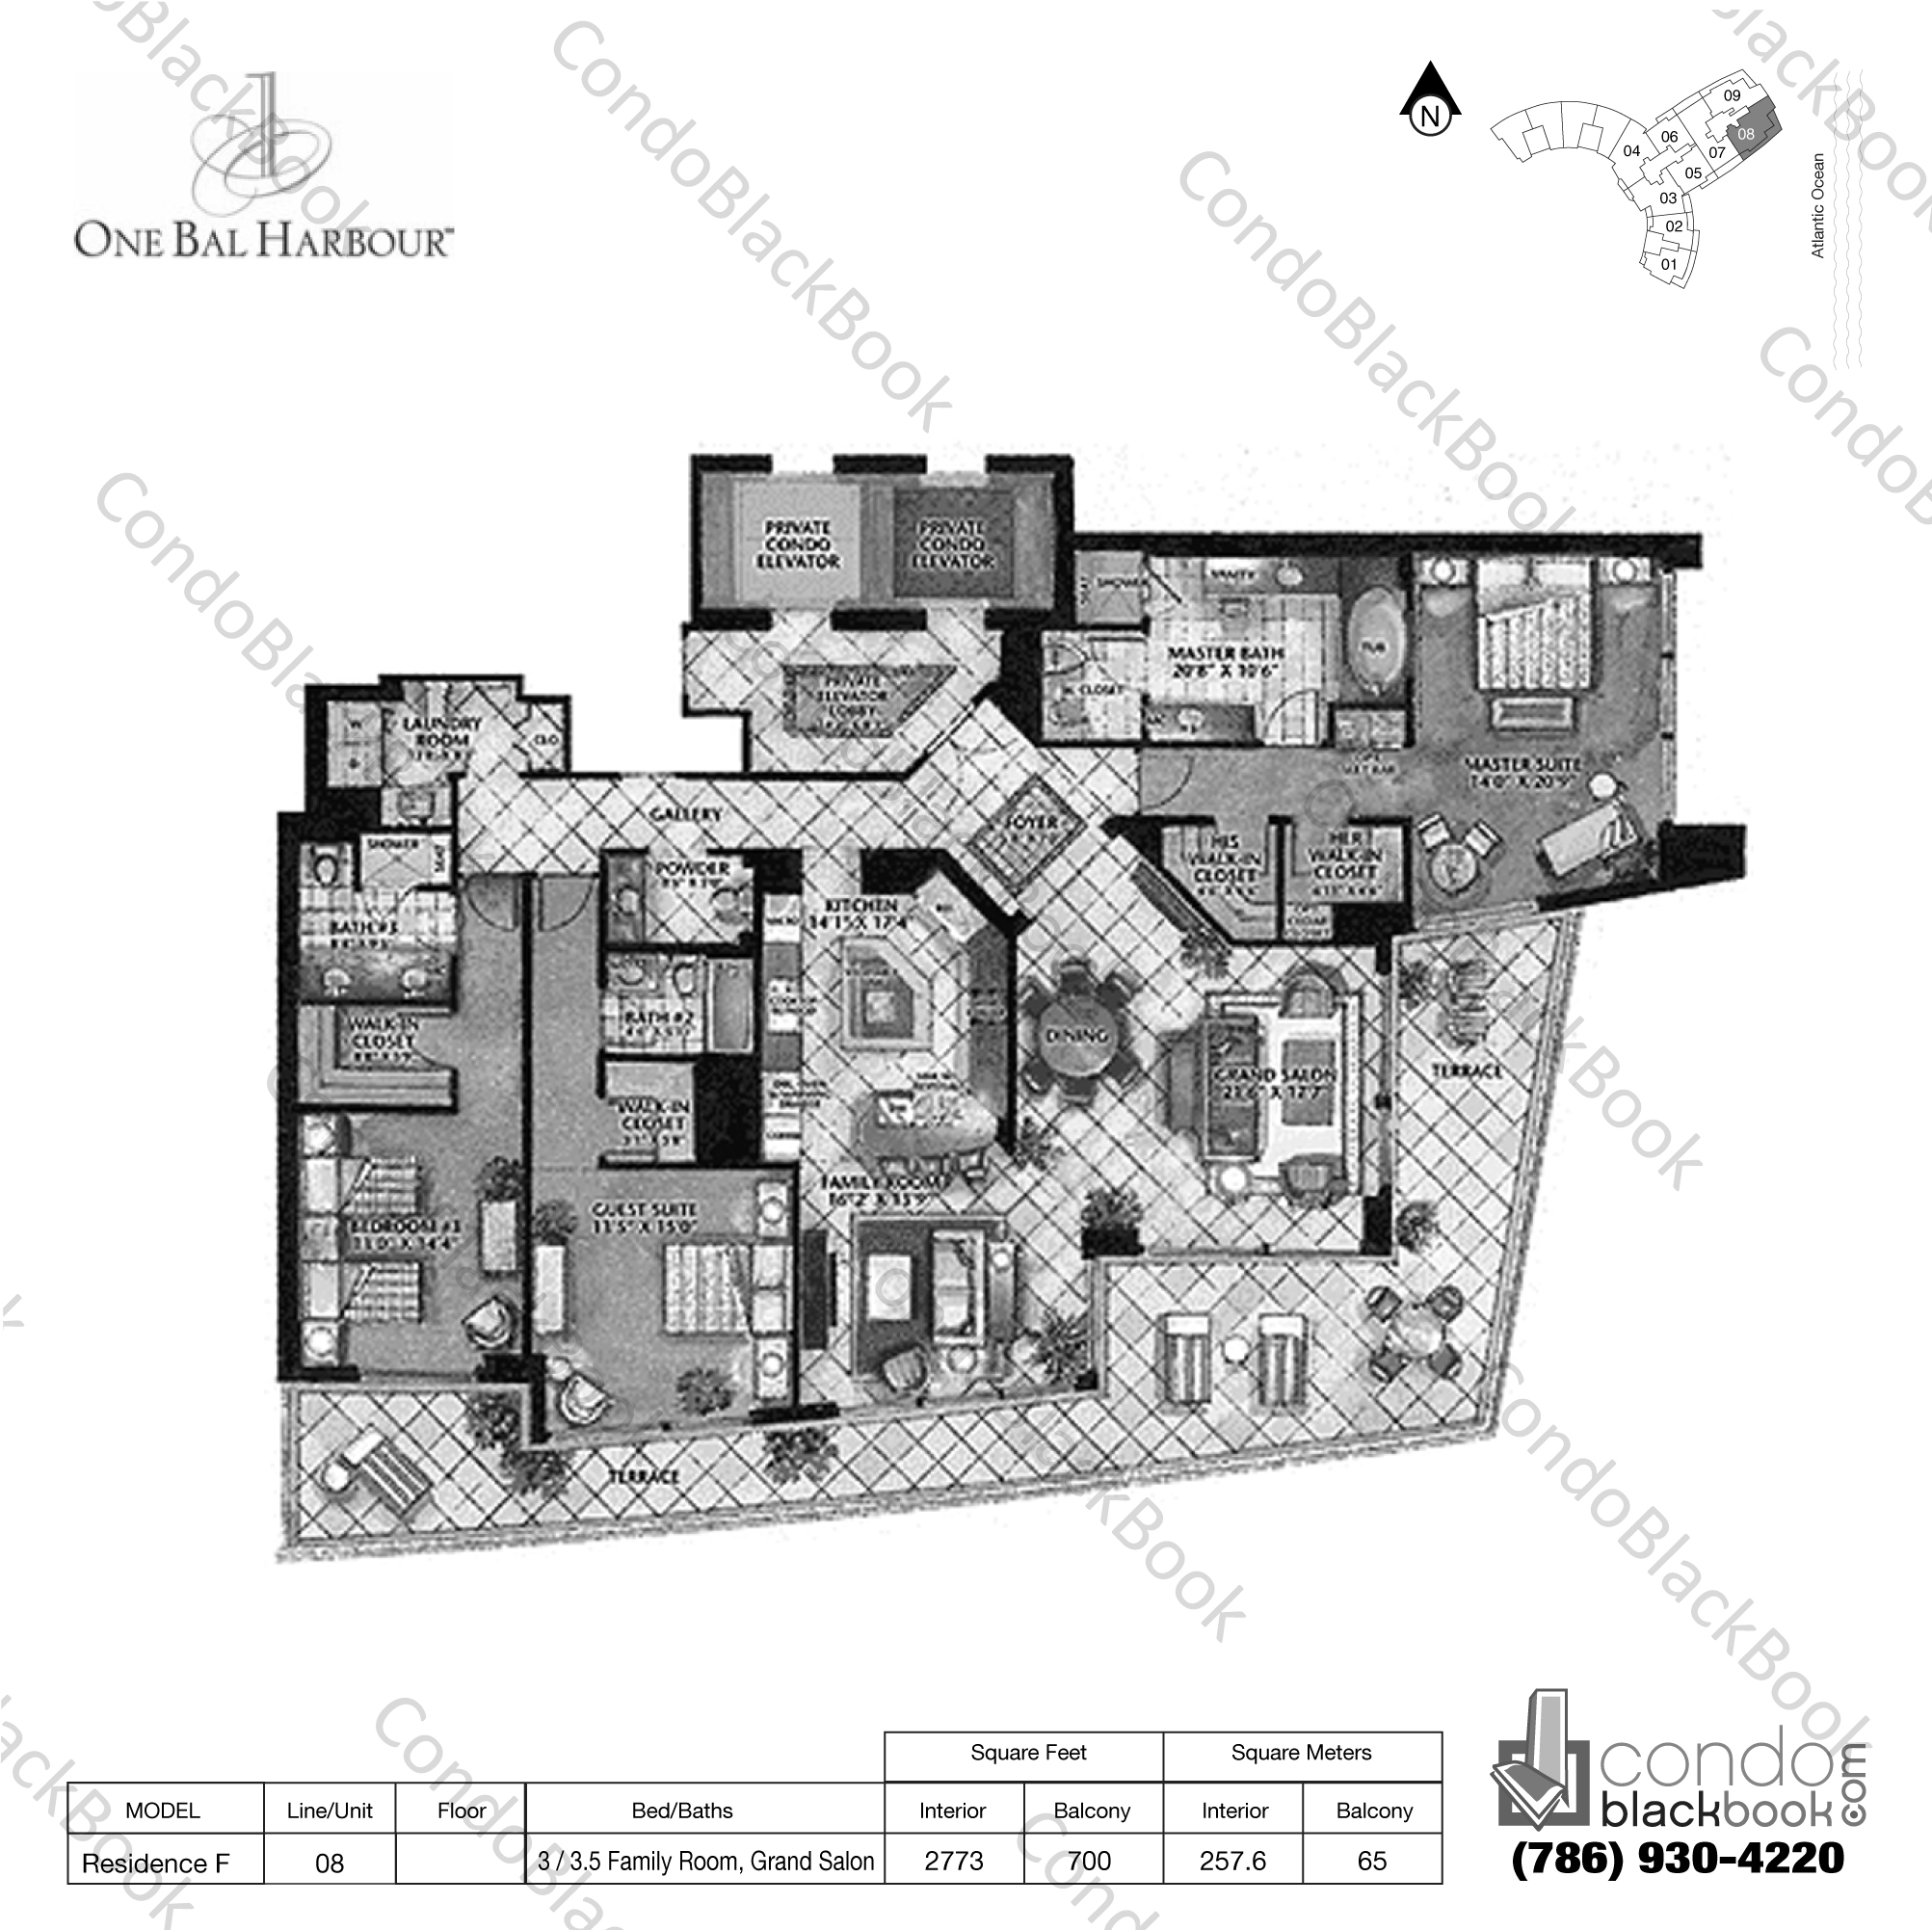 Floor plan for One Bal Harbour Bal Harbour, model Residence F, line 08, 3 / 3.5 Family Room, Grand Salon bedrooms, 2773 sq ft